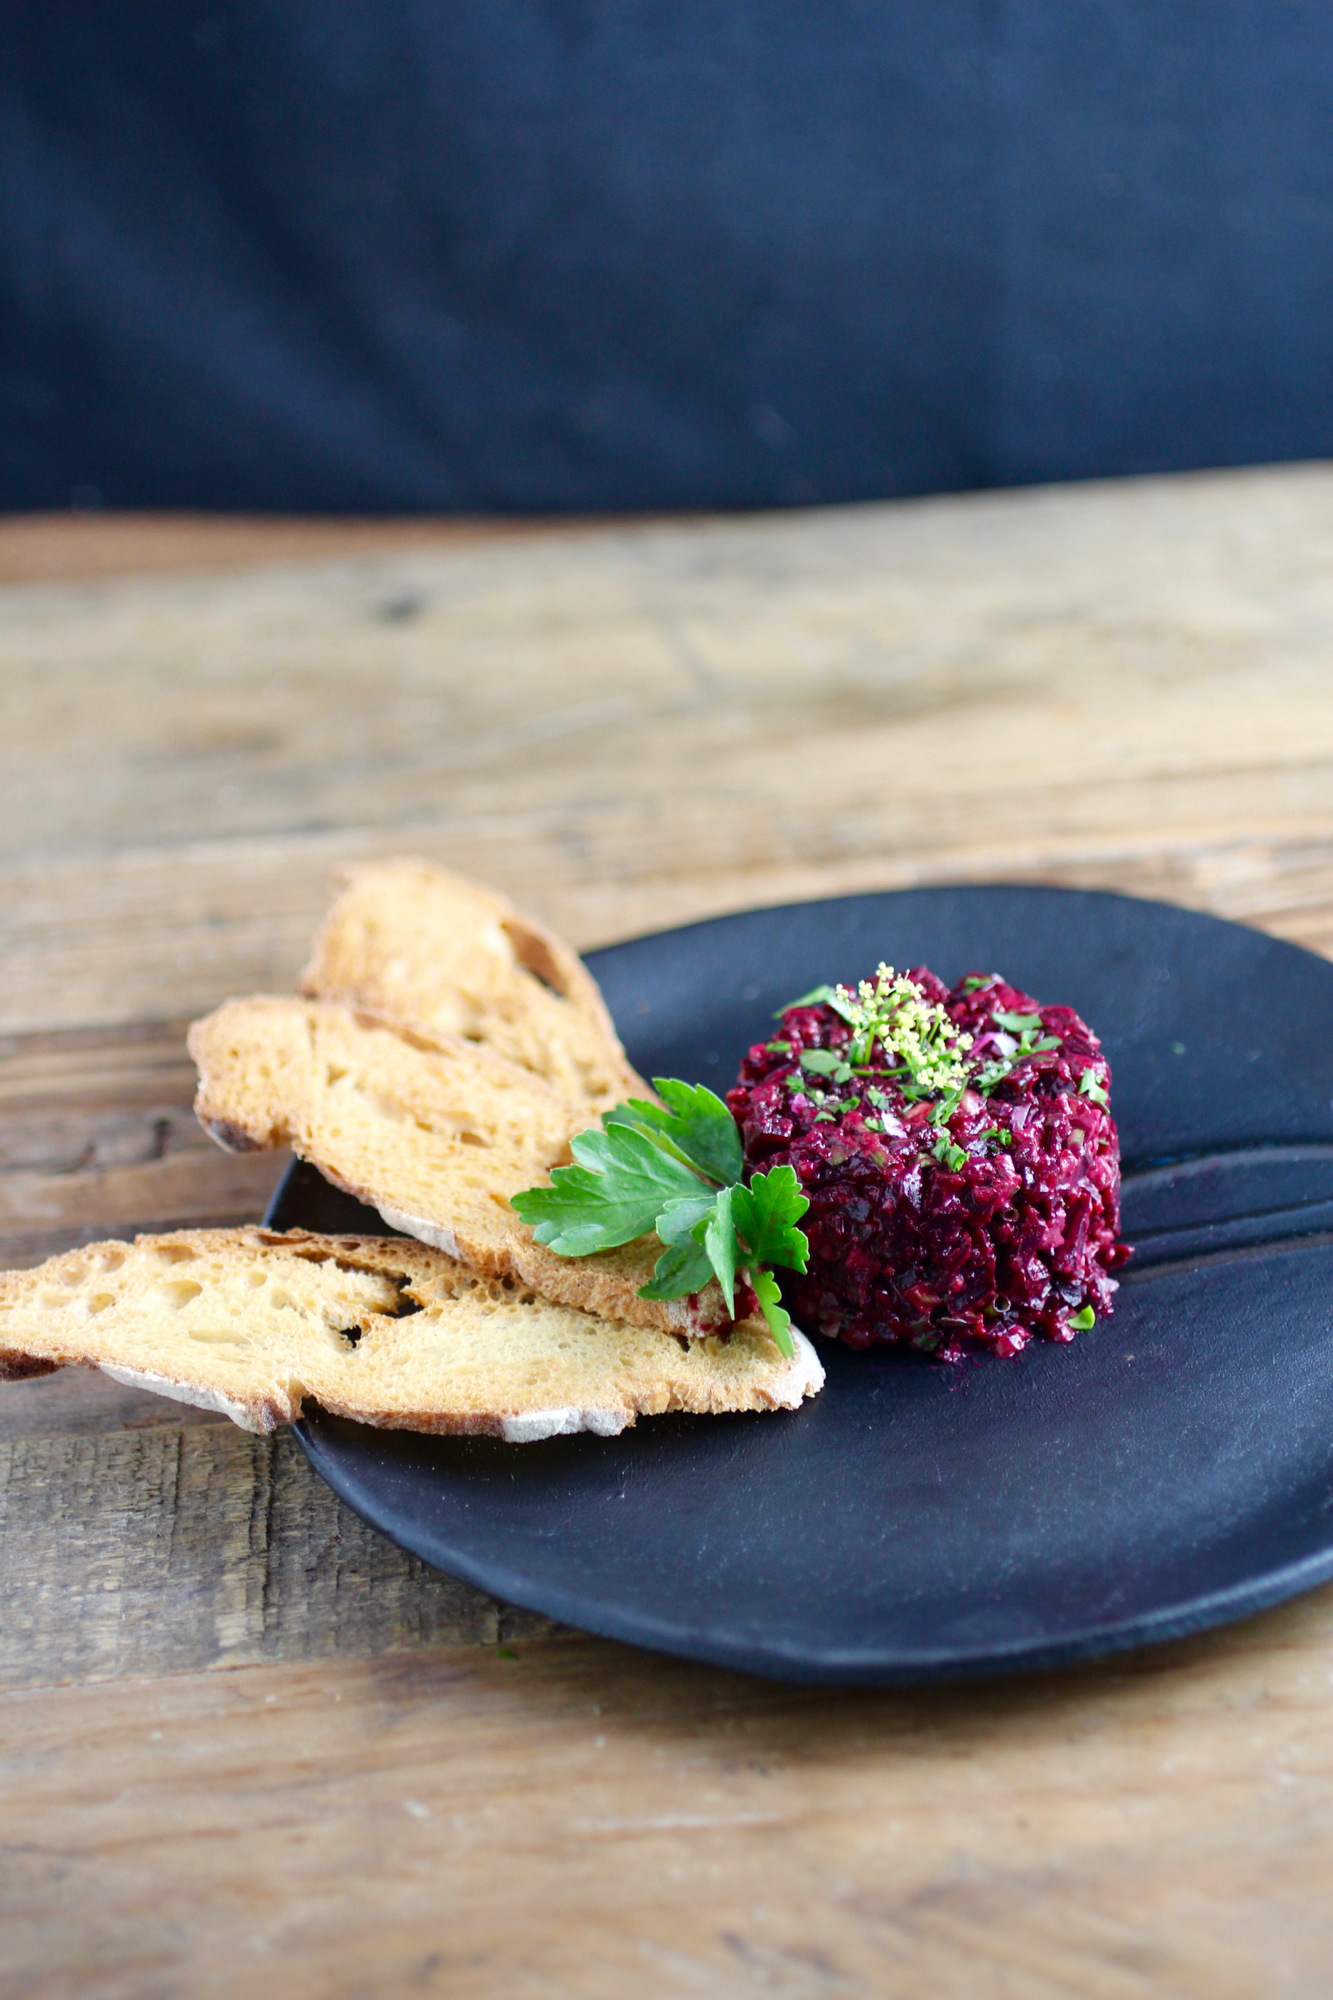 Beet tartare served with baguette crisps, but you can use any edible vehicle for the tartare of your choosing.